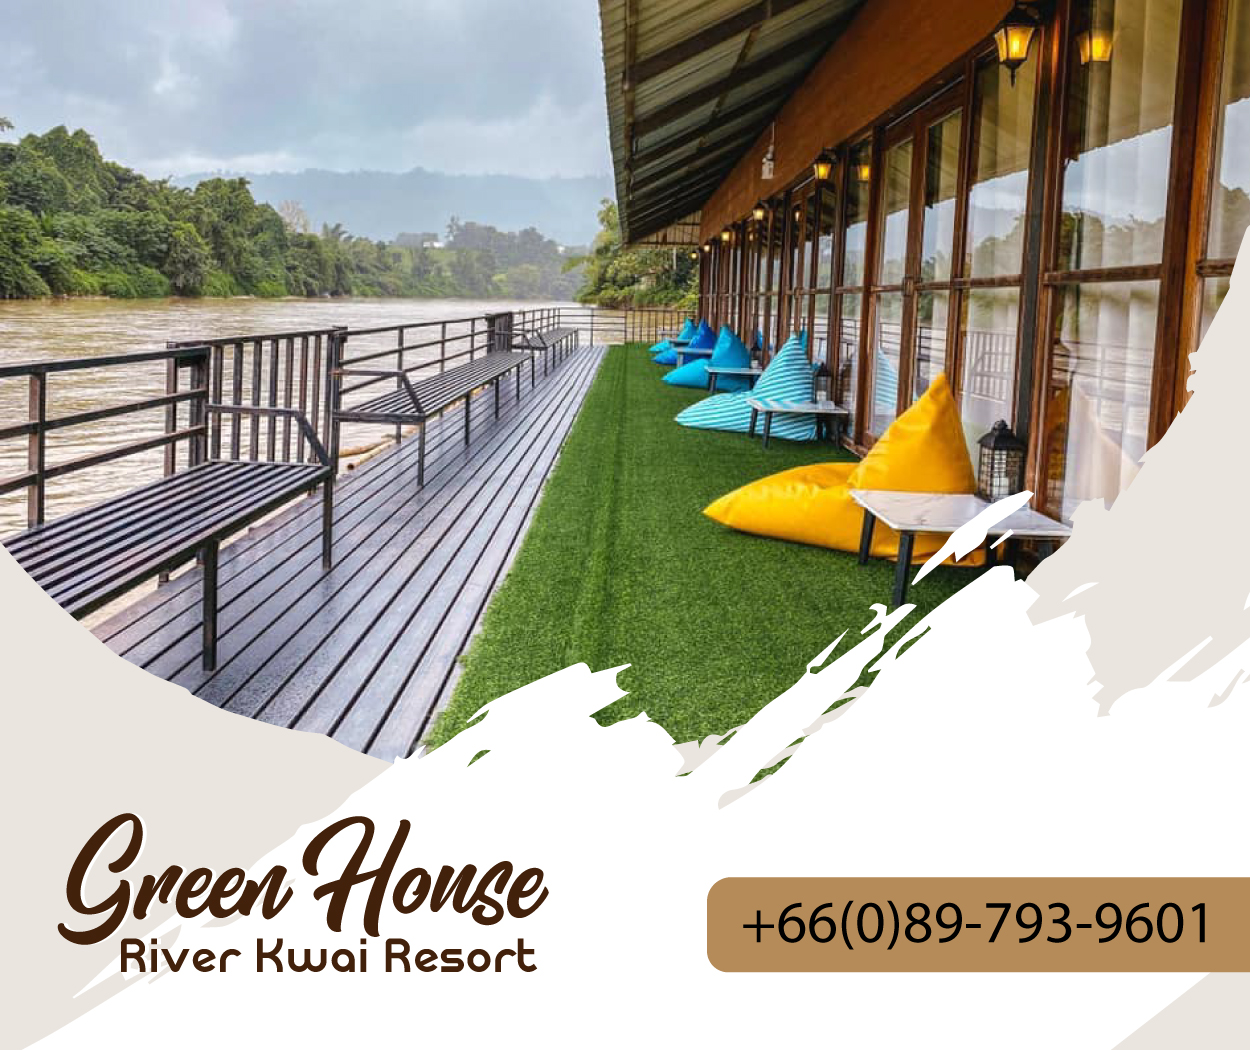 Green House River Kwai Resort Kanchanaburi